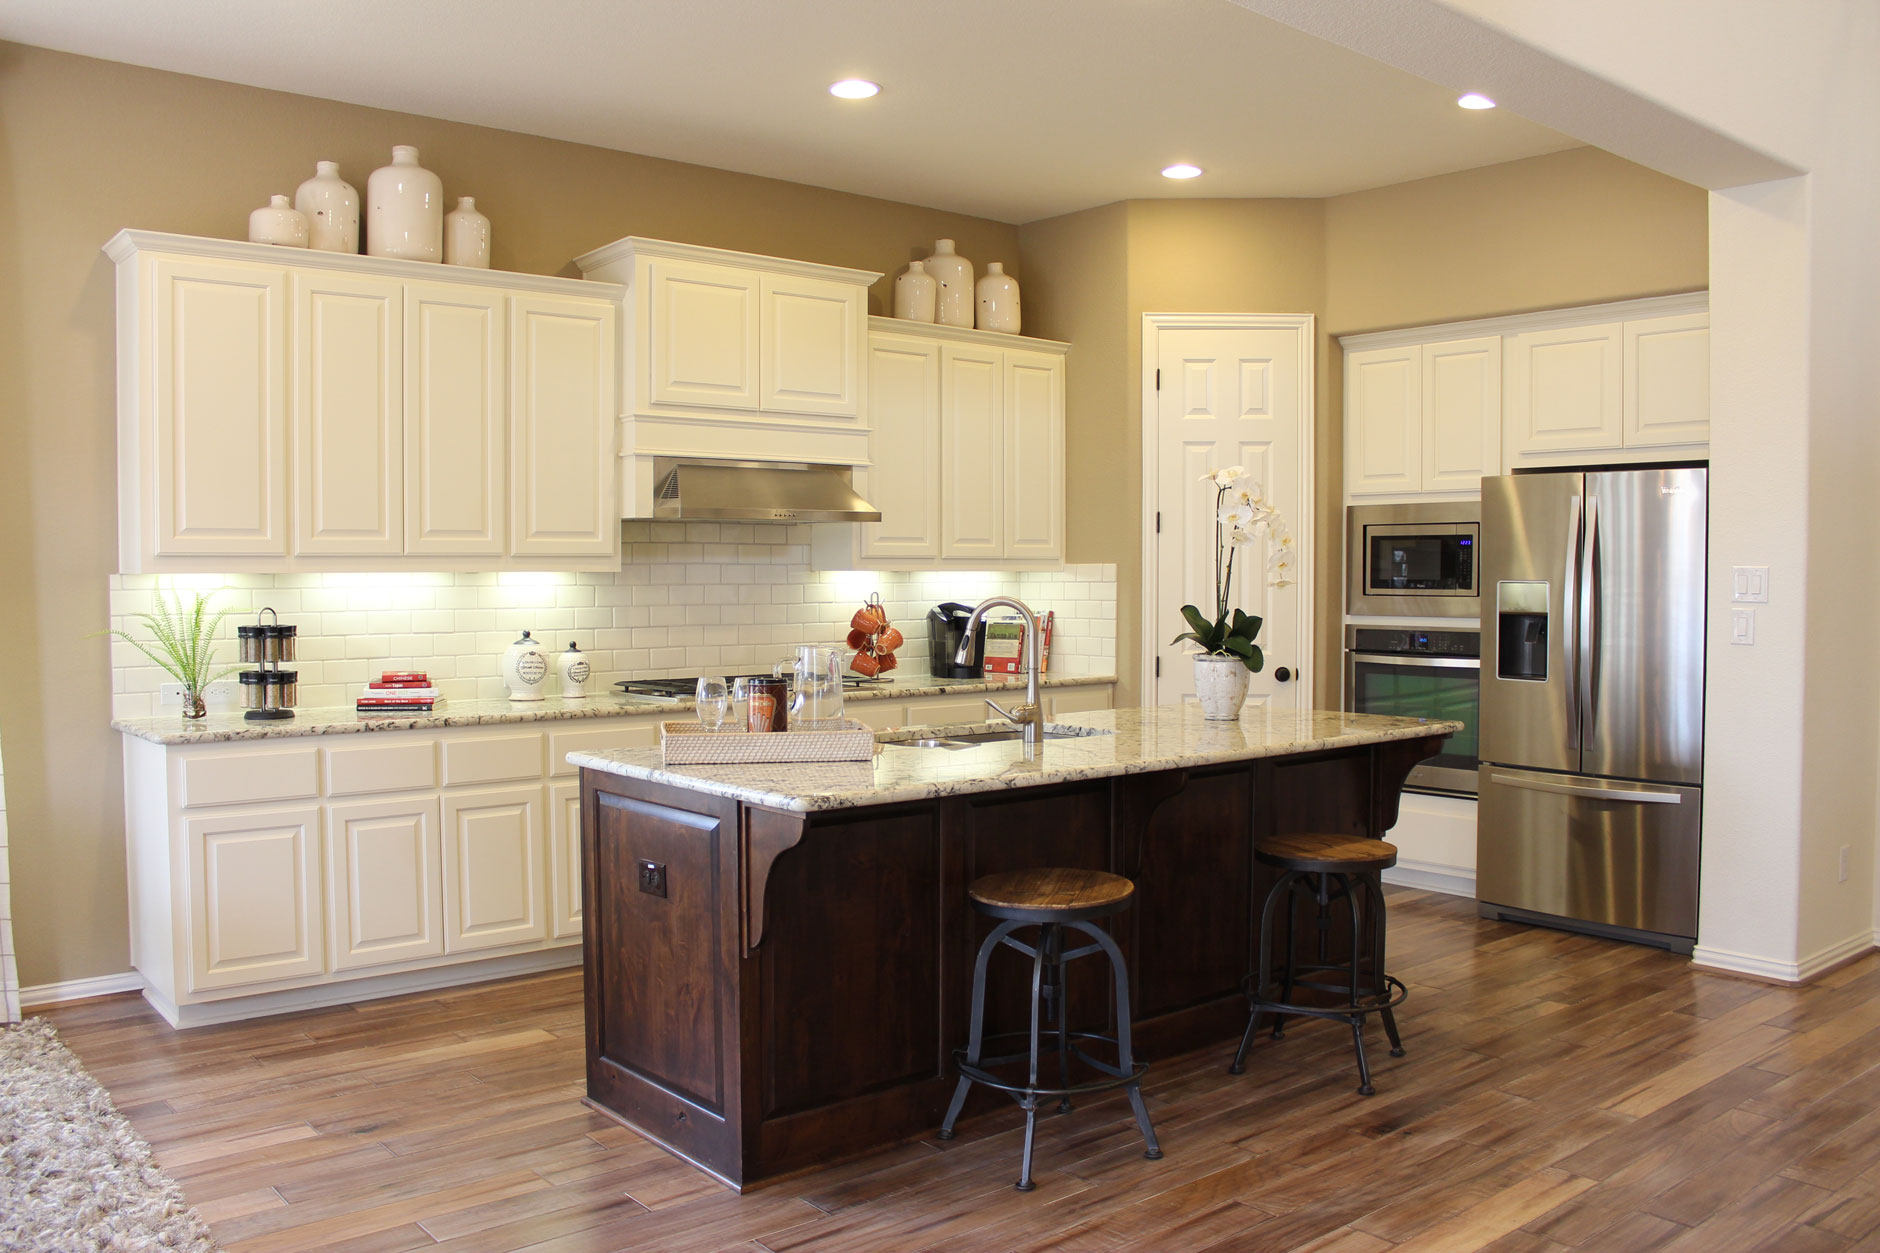 Five kitchen and bath trend predictions taylorcraft for Cabinetry kitchen cabinets